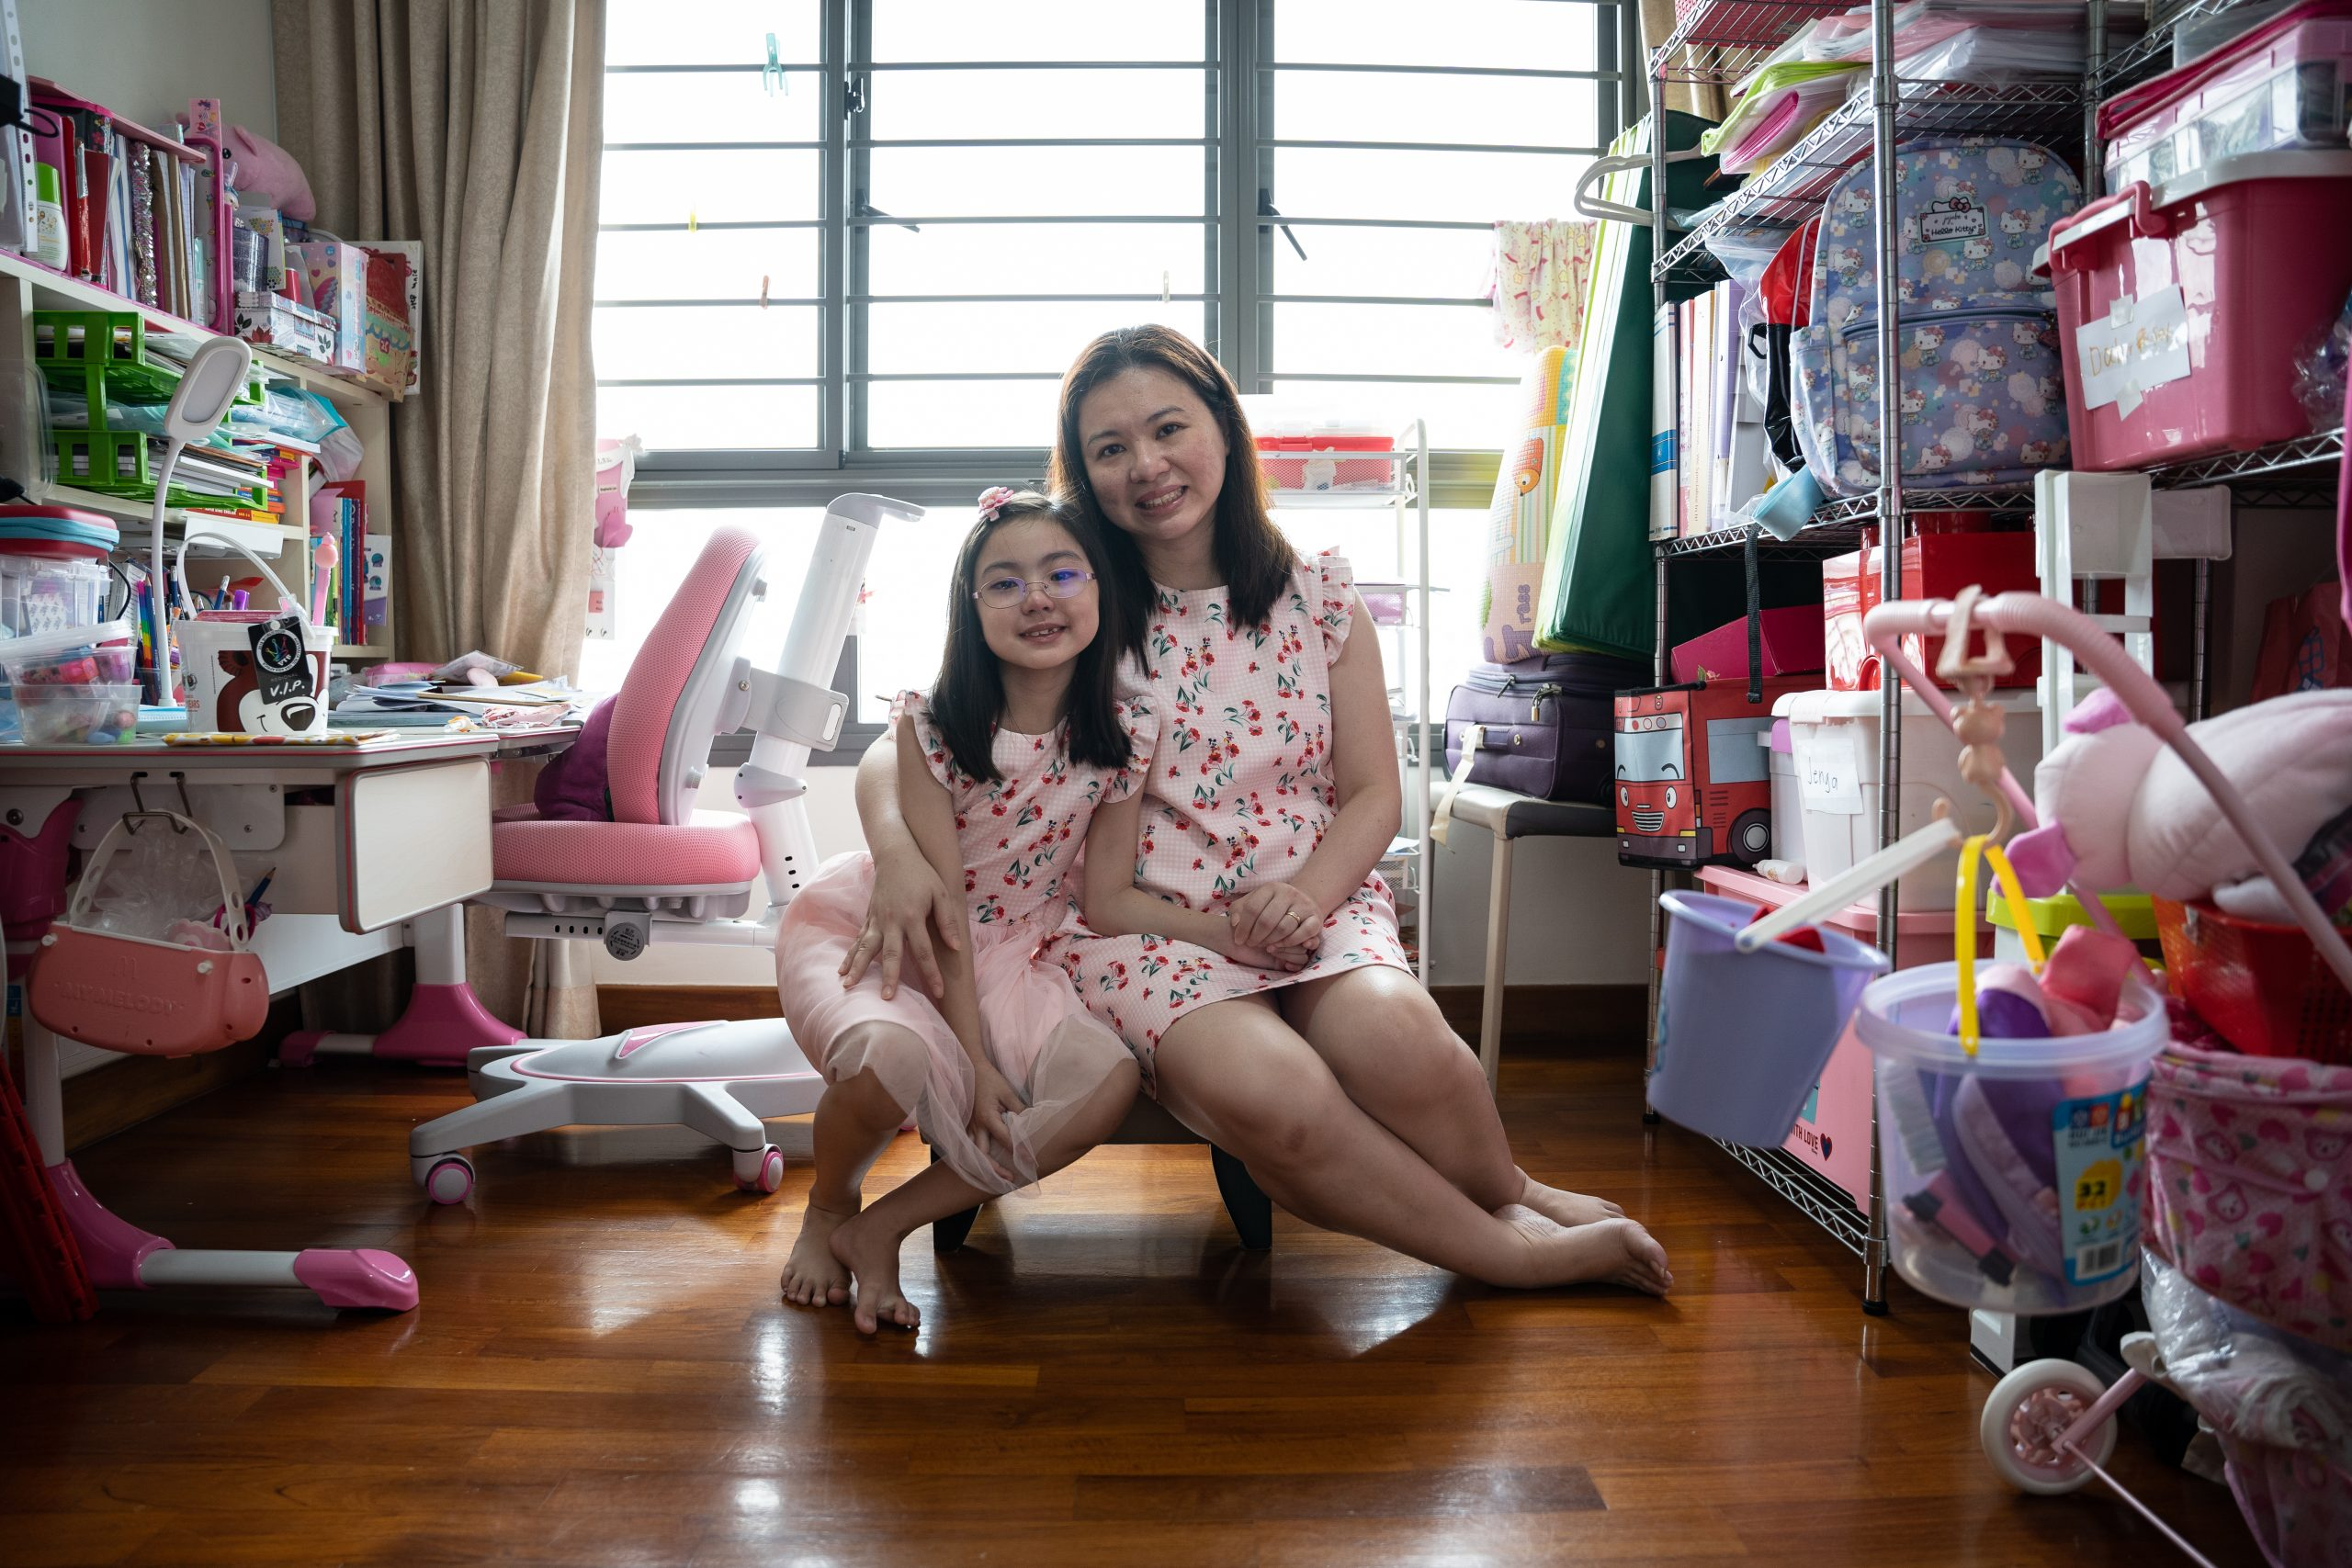 The Circuit Breaker was tough for Stephanie Lau, 8, but through patience and understanding, her mum Madam Lee Pei Ling, a senior staff nurse, supported her and kept her occupied with baking and gardening when Madam Lee wasn't working.